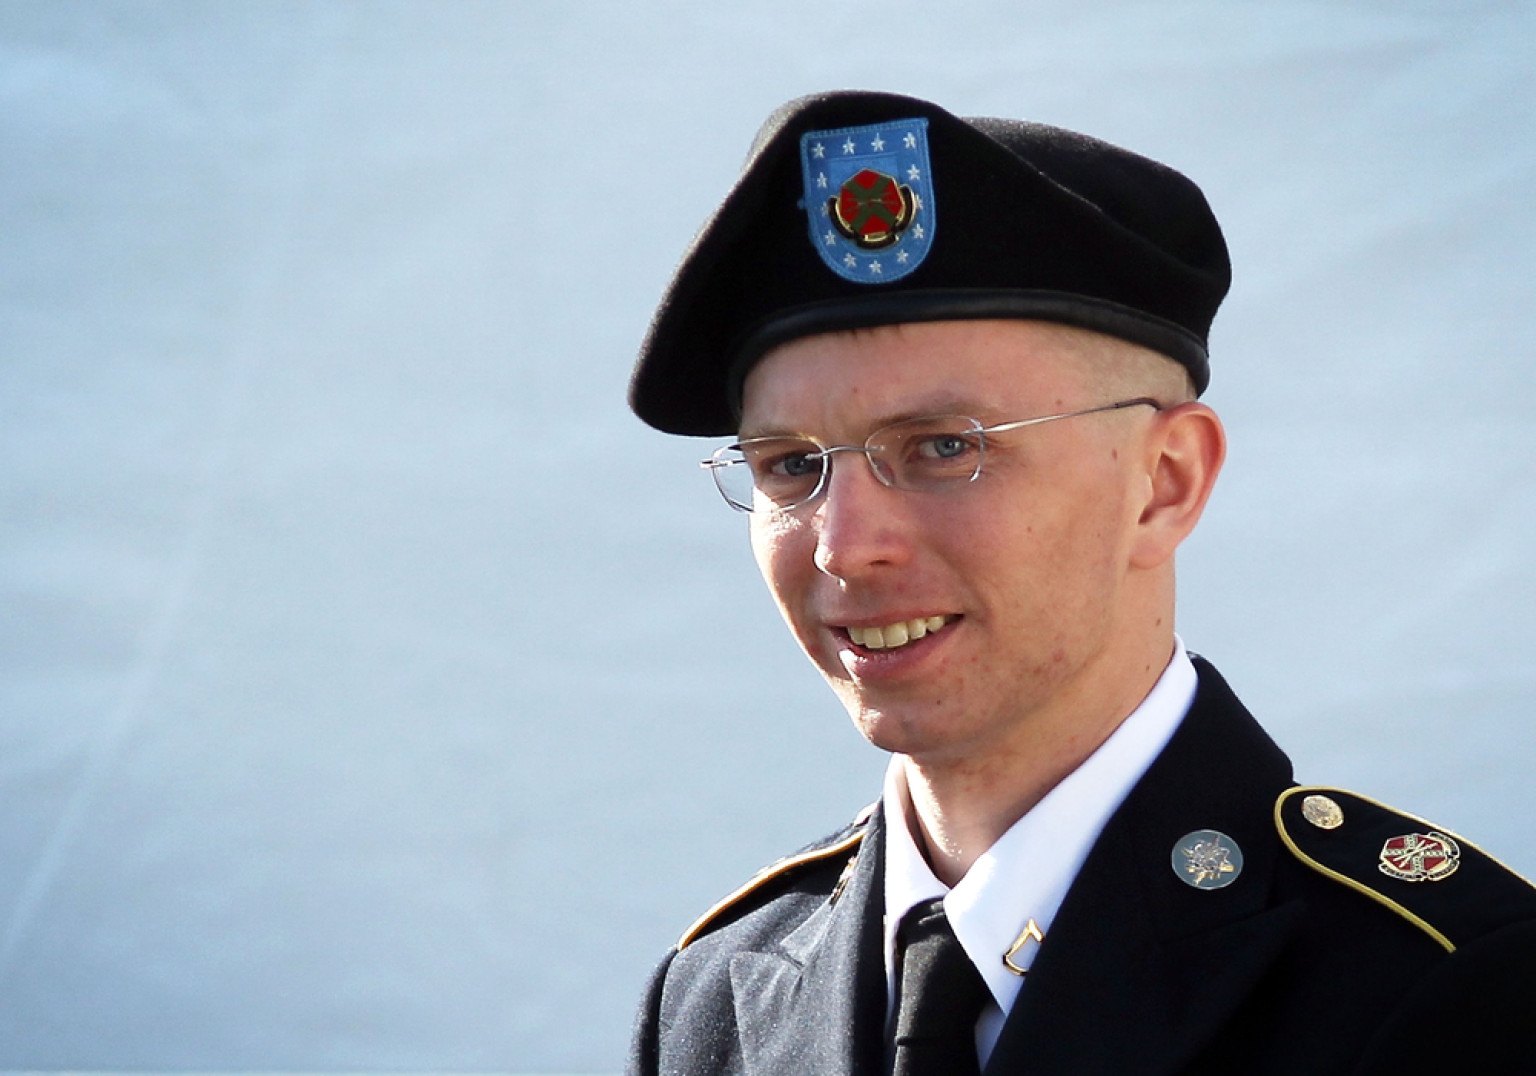 Bradley Manning Aided The Enemy Because He Knew Al Qaeda Uses The Internet, Prosecutors Charge - o-BRADLEY-MANNING-AIDING-THE-ENEMY-facebook